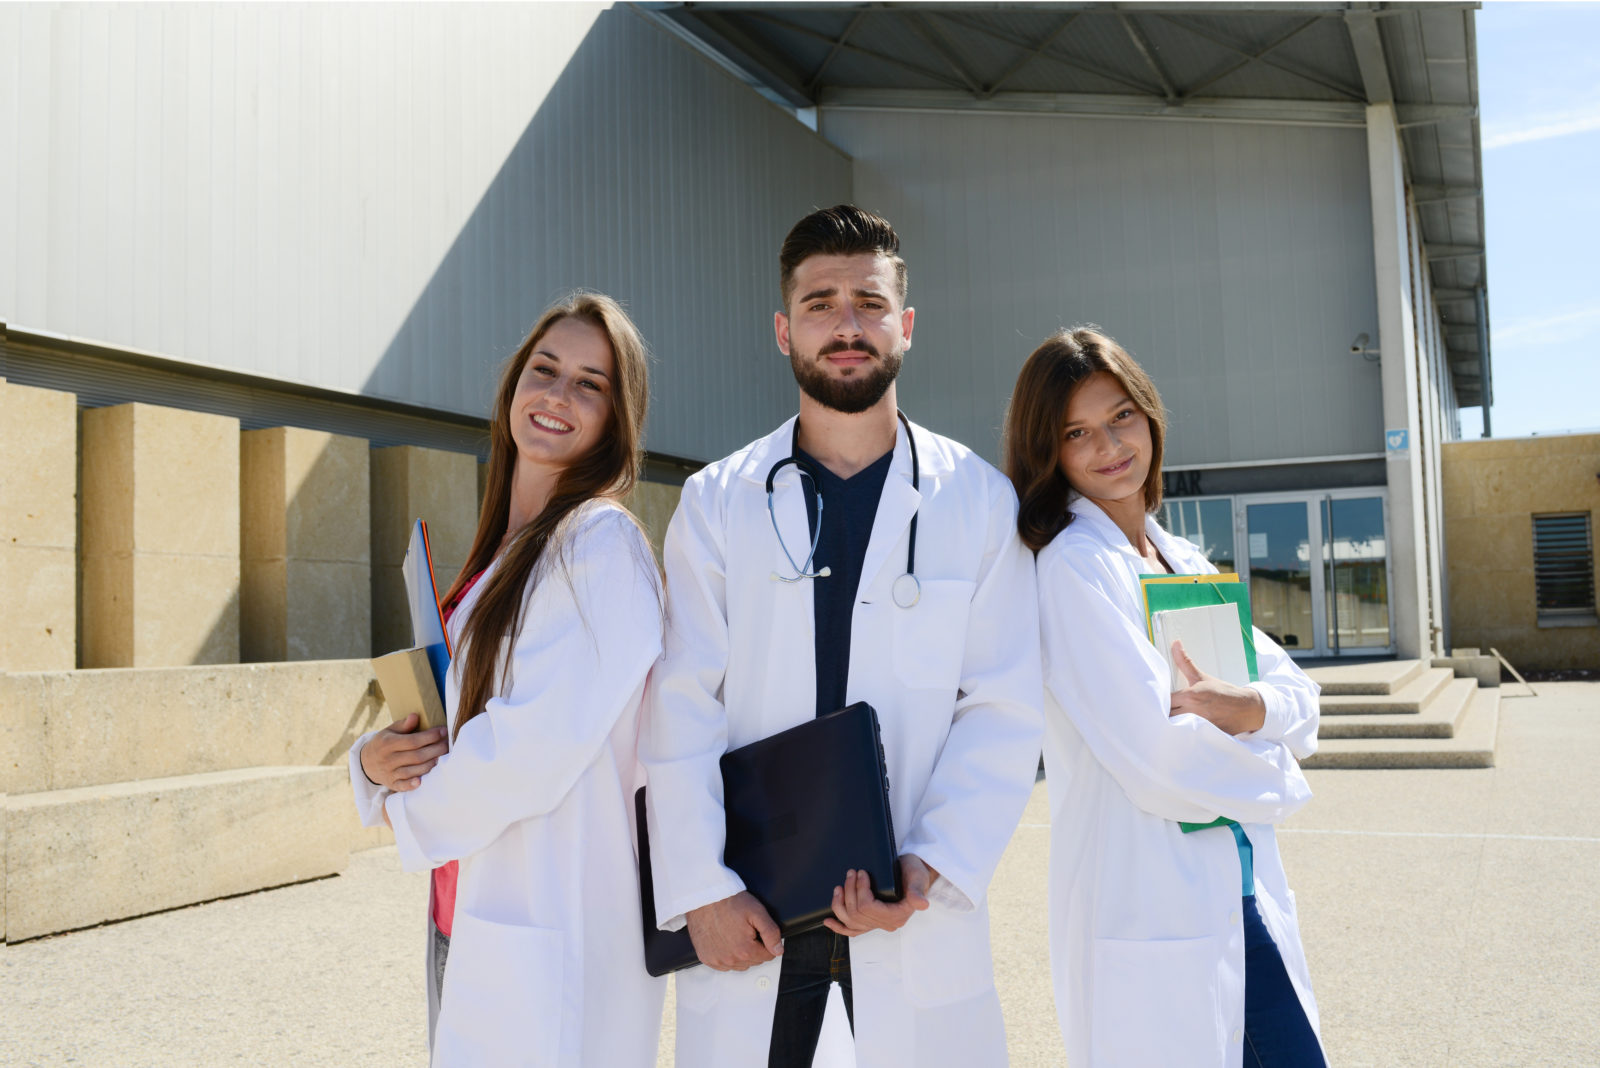 Nursing School Pro How to Find RN Programs in California Registered Nursing Programs  Student Nursing Programs RN Programs in California Online Nursing School Nursing Programs in California